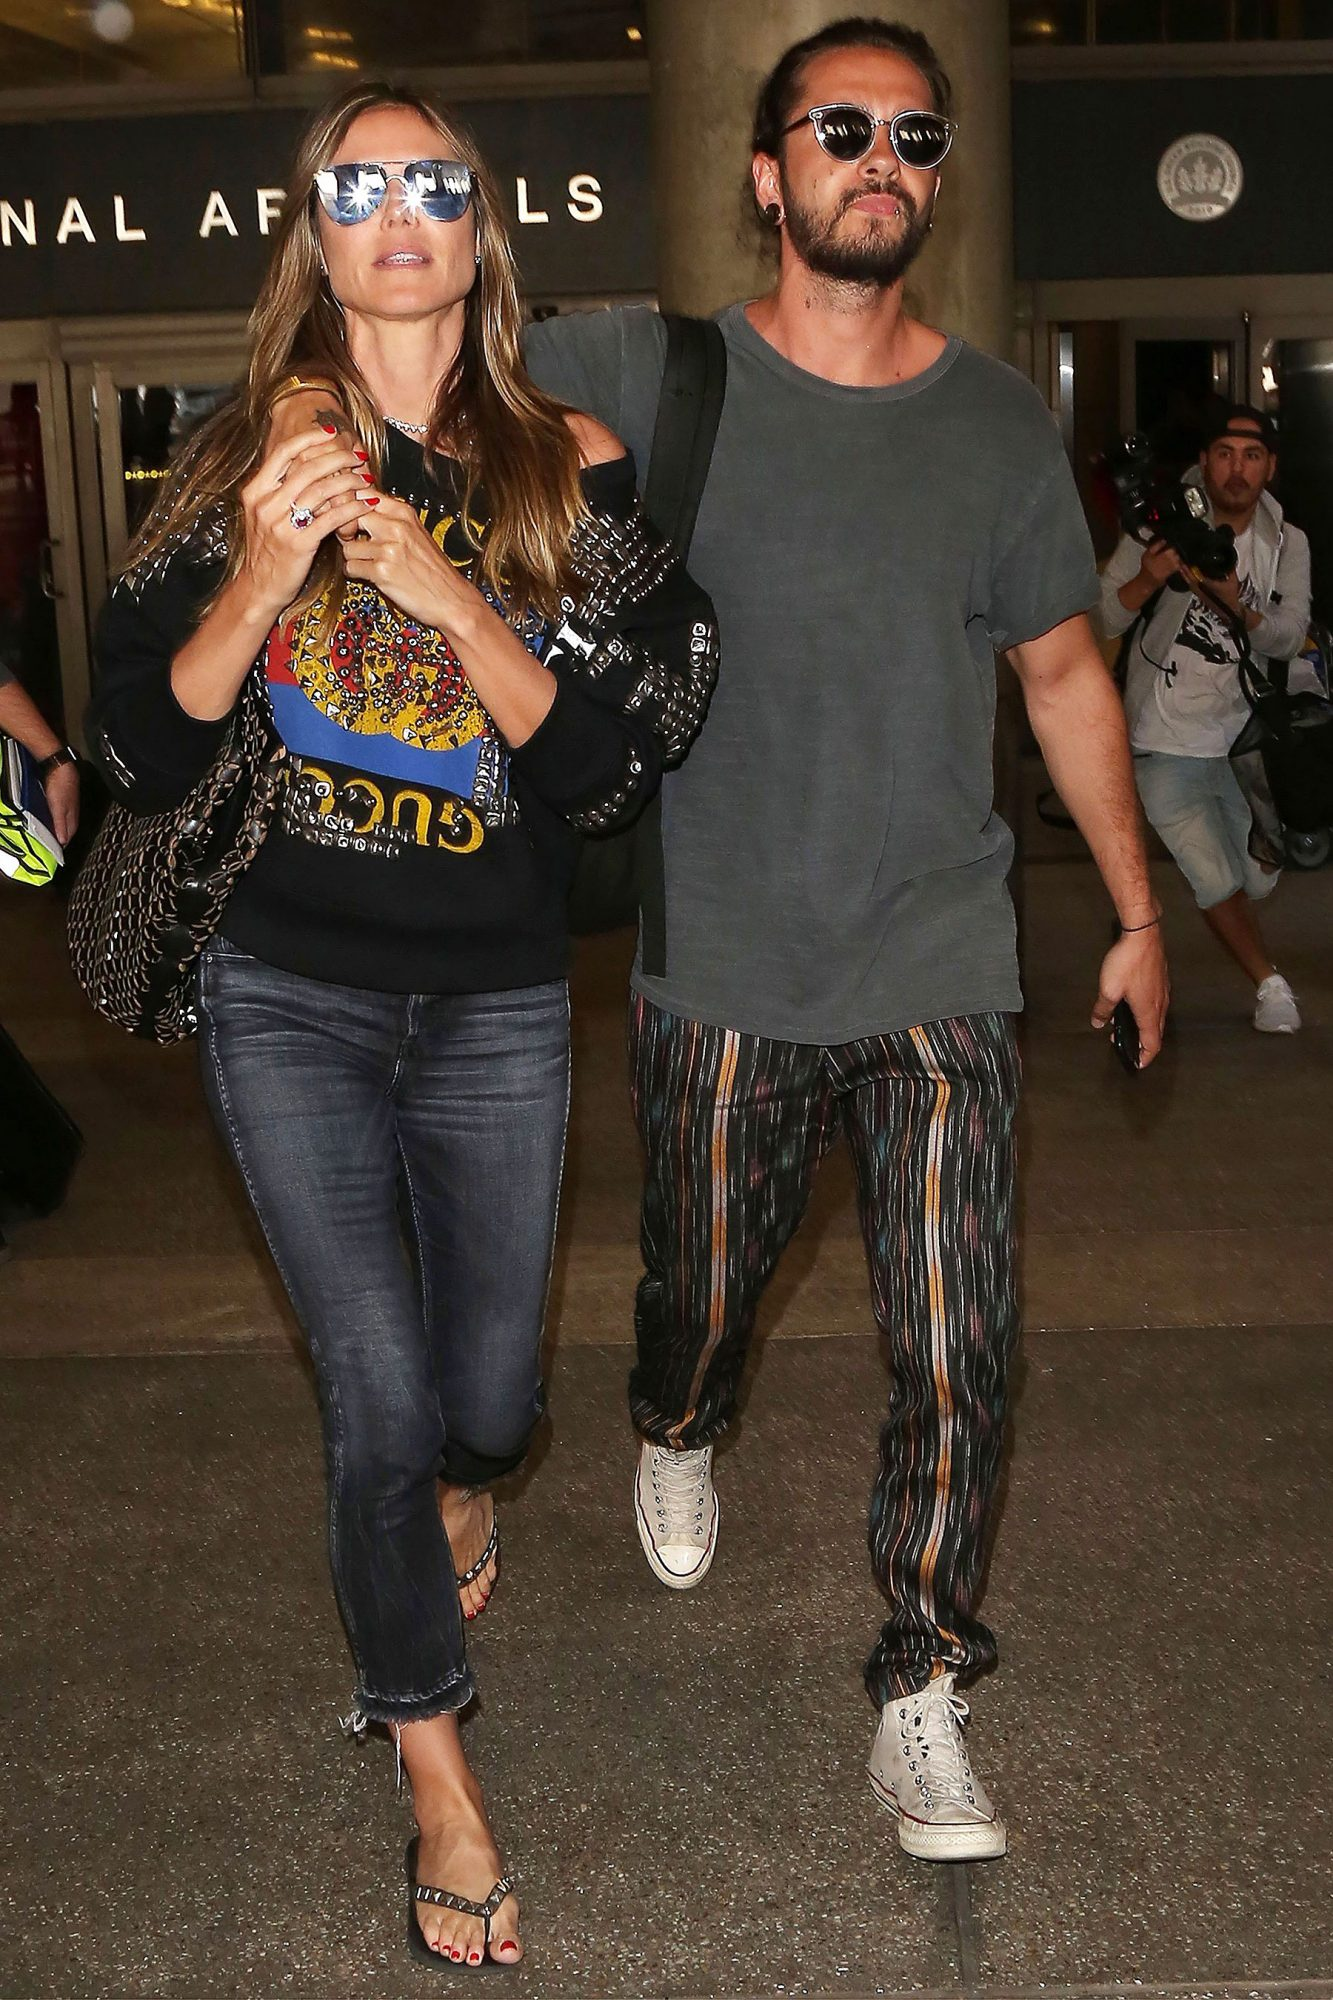 Heidi Klum and Tom Kaulitz at LAX International Airport, Los Angeles, USA - 12 Apr 2018